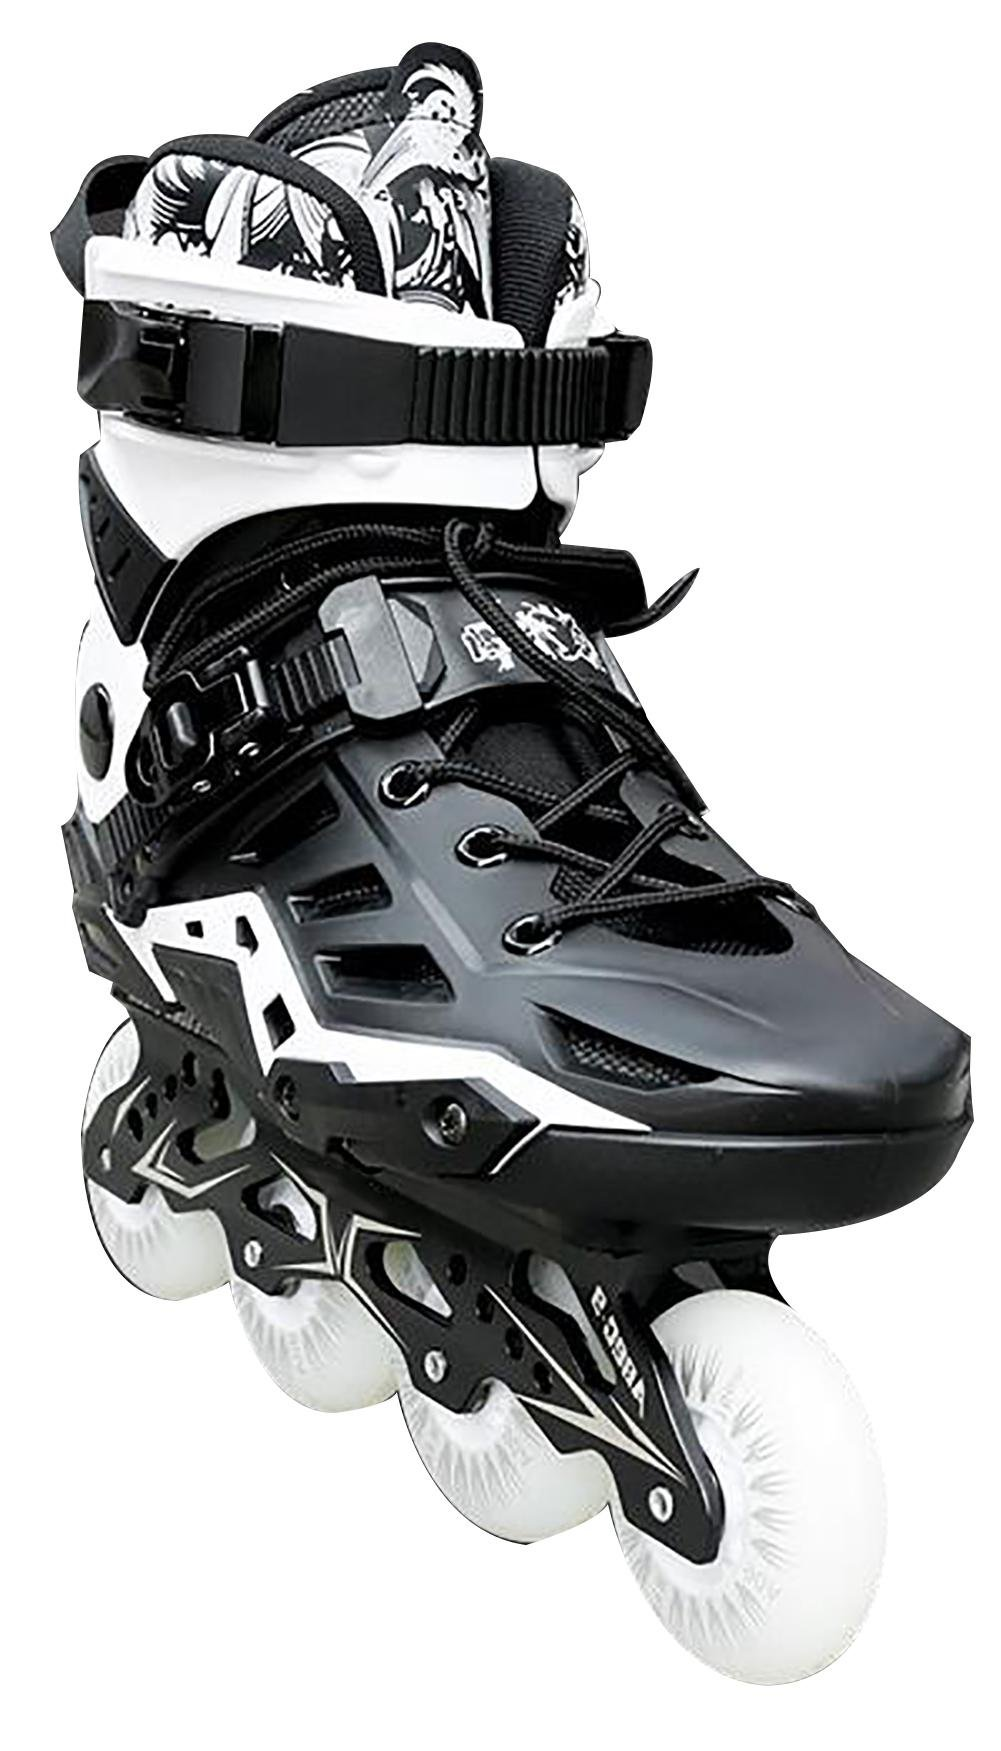 Inline Skates For Men Unisex Racing PP Material 3D Aluminum Alloy Bracket PVC High Elasticity PU Wheels Black , 41